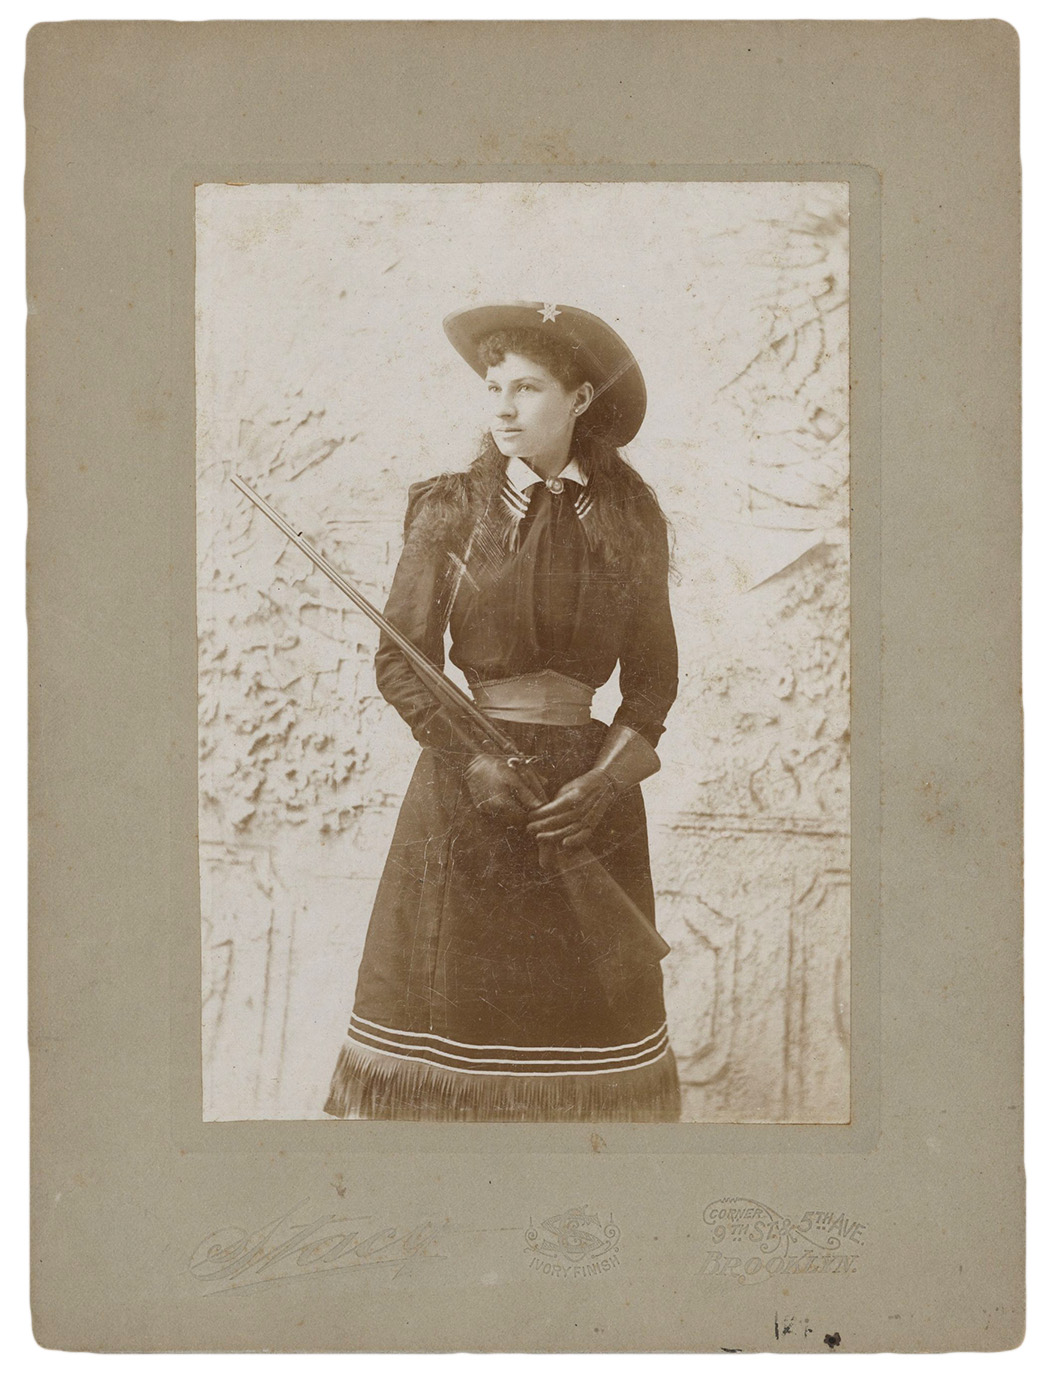 Annie Oakley by Charles Stacy, 1894